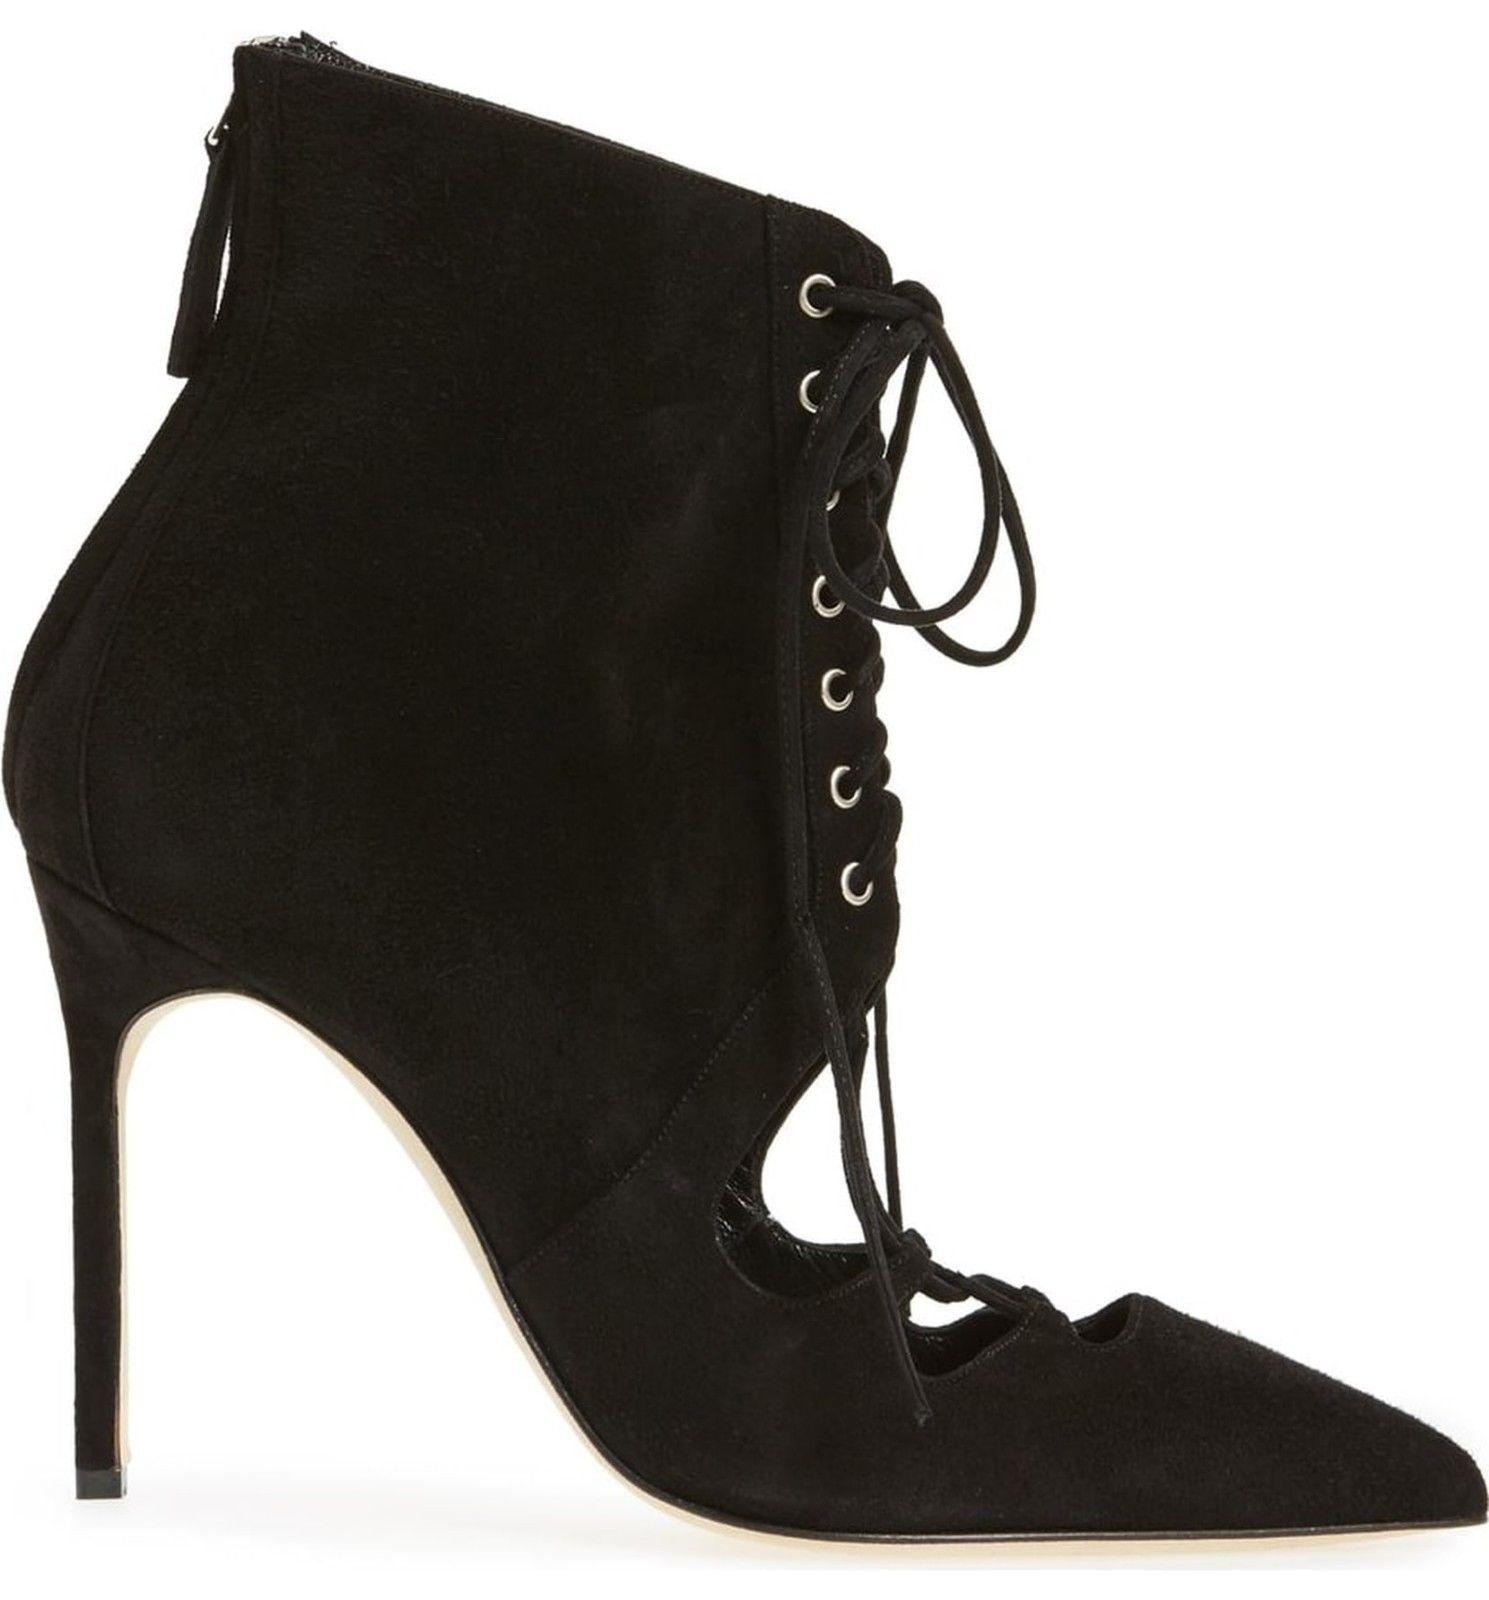 $1245 MANOLO BLAHNIK Lace Up Boots GRACO Cut Out Black Suede Ankle Booties 38 - Click Image to Close